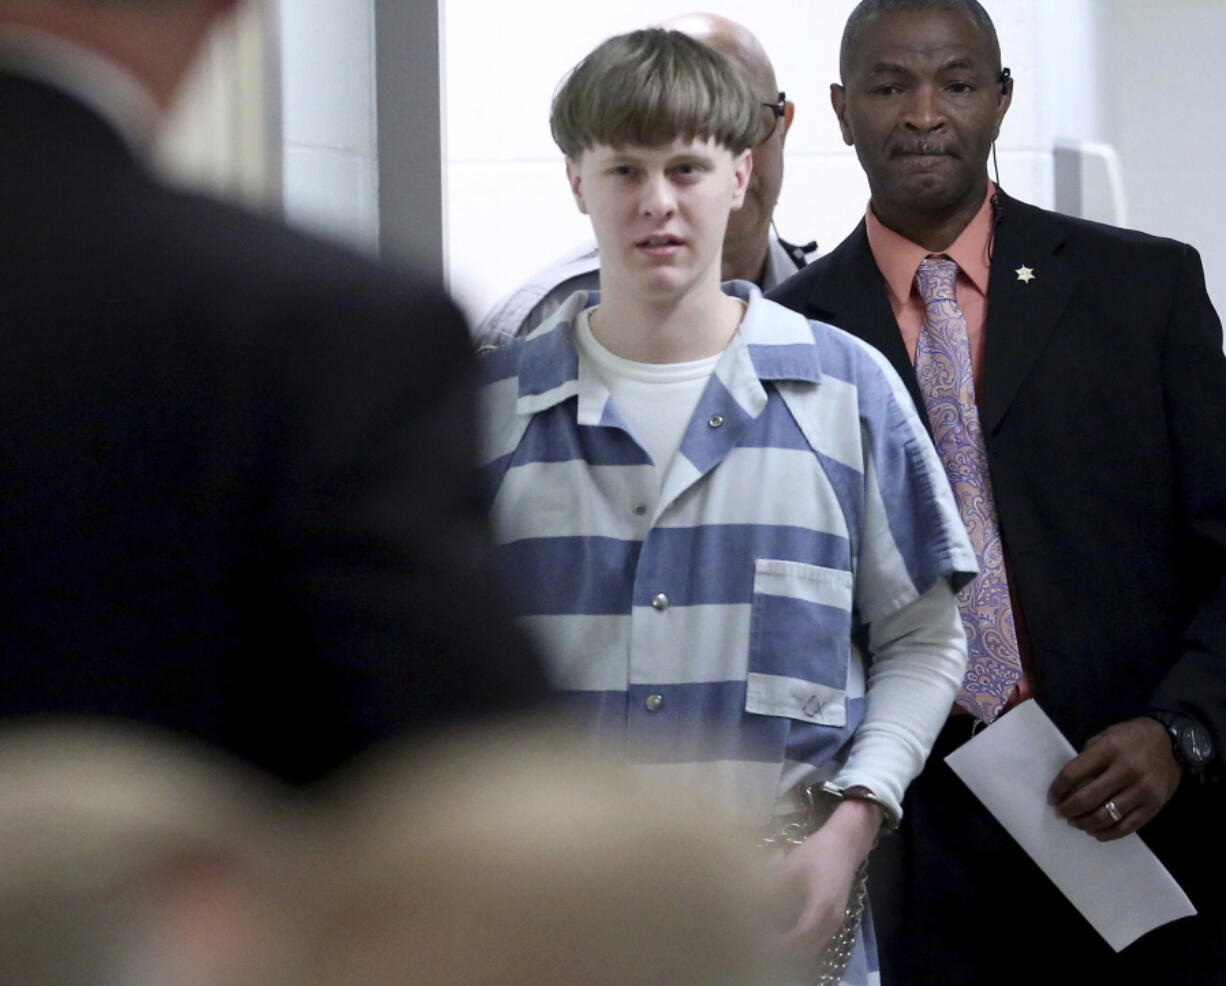 FILE - In this April 10, 2017, file photo, Dylann Roof enters the court room at the Charleston County Judicial Center to enter his guilty plea on murder charges in Charleston, S.C. A federal appeals court on Wednesday, Aug. 25, 2021, upheld Roof's conviction and sentence on federal death row for the 2015 racist slayings of nine members of a Black South Carolina congregation. A three-judge panel of the 4th U.S. Circuit Court of Appeals in Richmond affirmed Roof's conviction and sentence in the shootings at Mother Emanuel AME Church in Charleston.